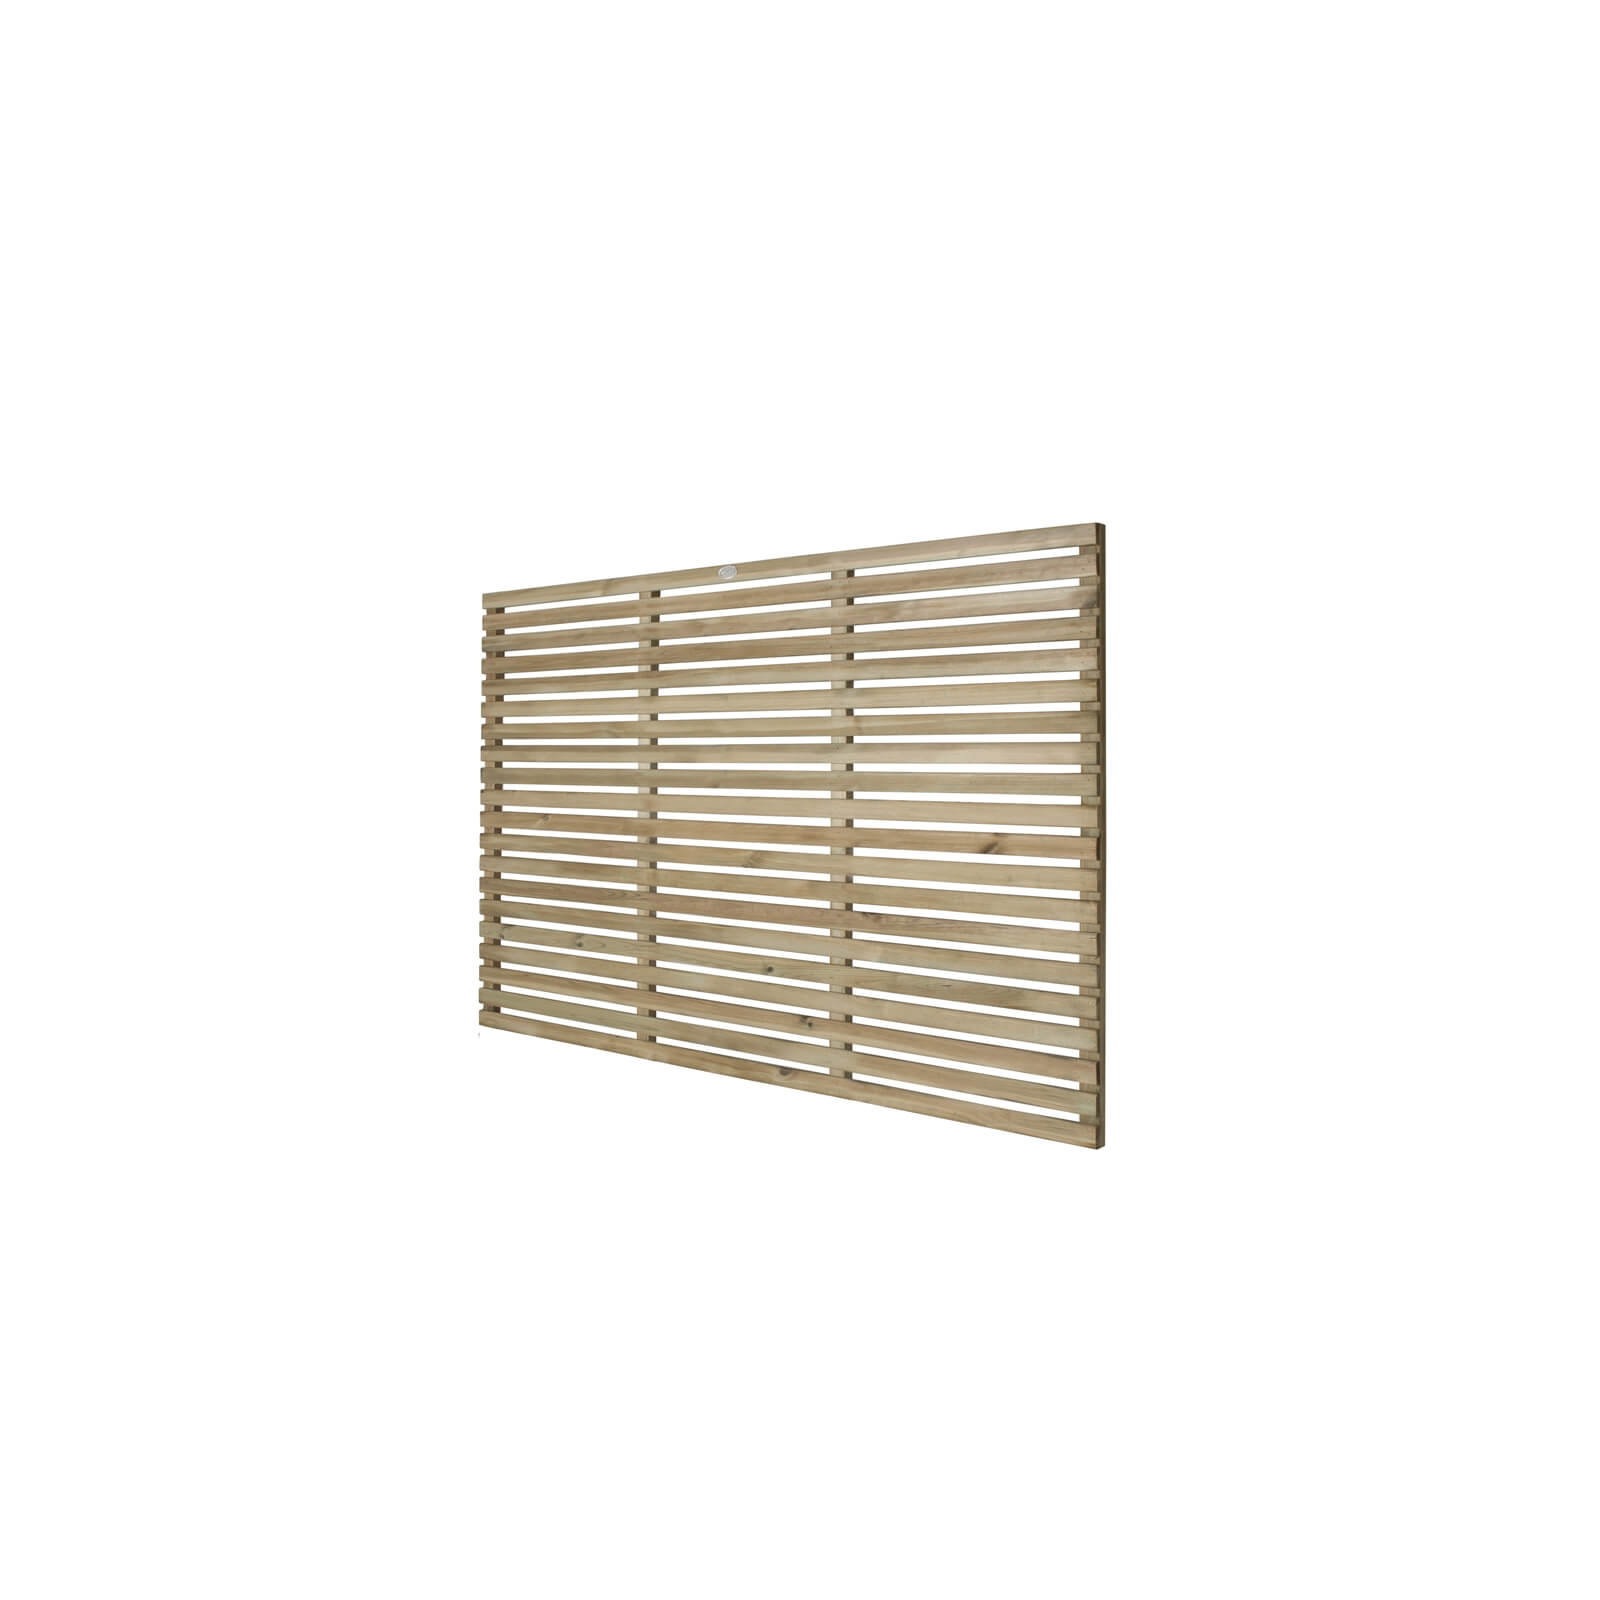 6ft x 4ft (1.8m x 1.2m) Pressure Treated Contemporary Slatted Fence Panel - Pack of 5